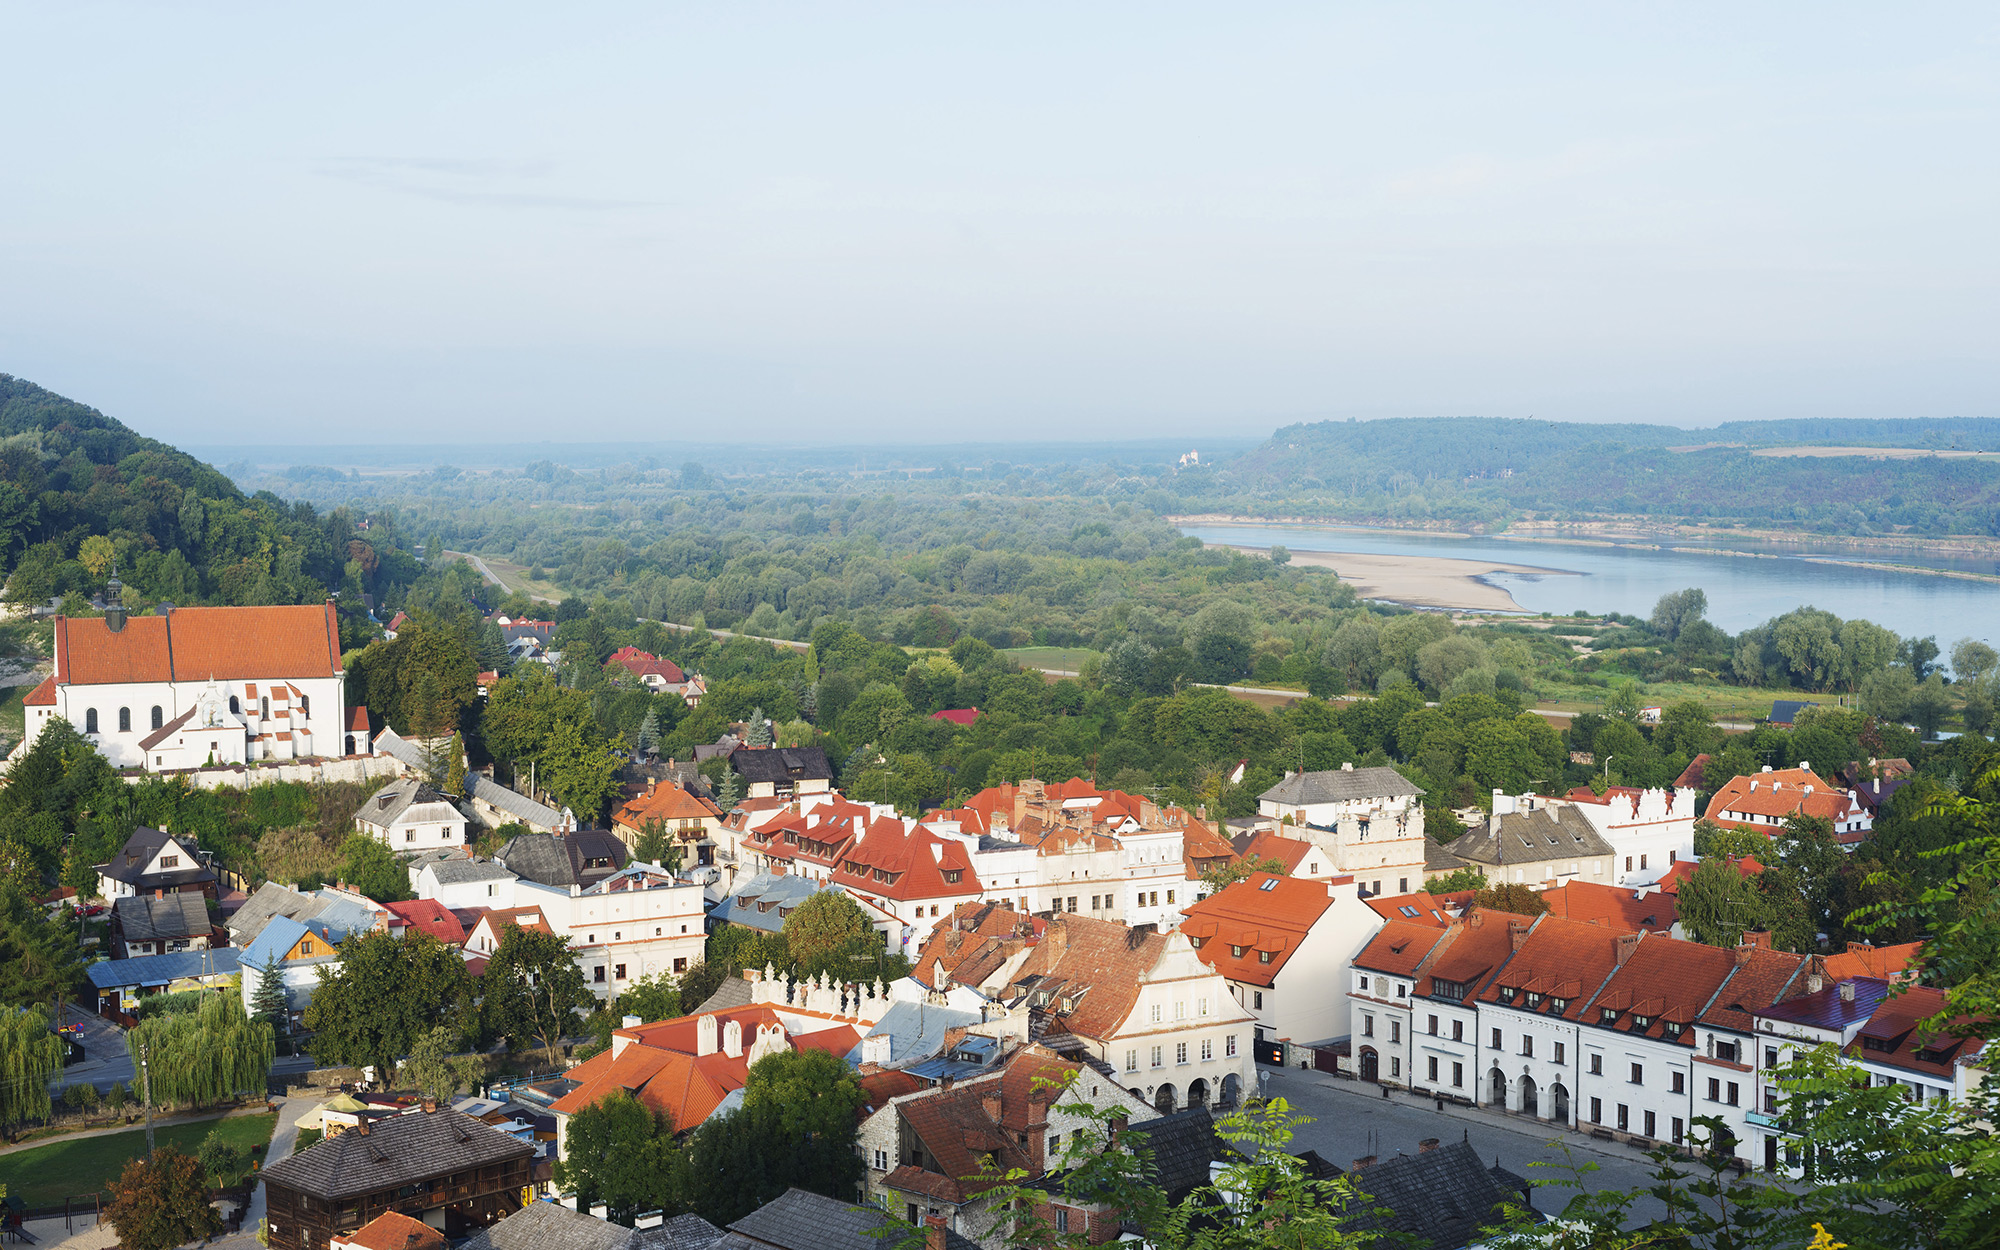 Europe's Most Beautiful Villages: Kazimierz Dolny, Poland